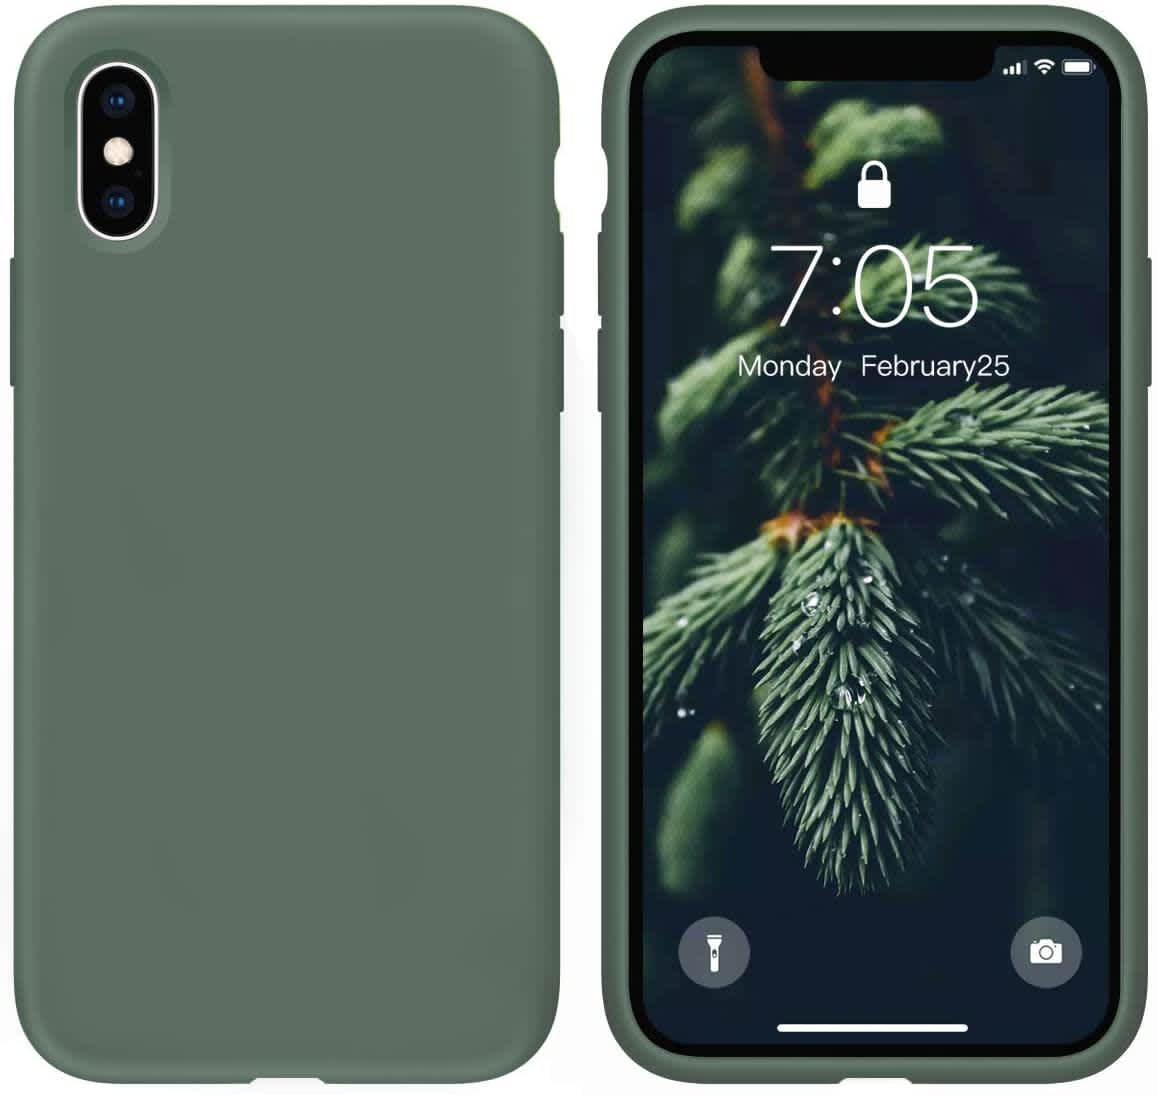 Ouxul Liquid Silicone Case for iPhone X/Xs